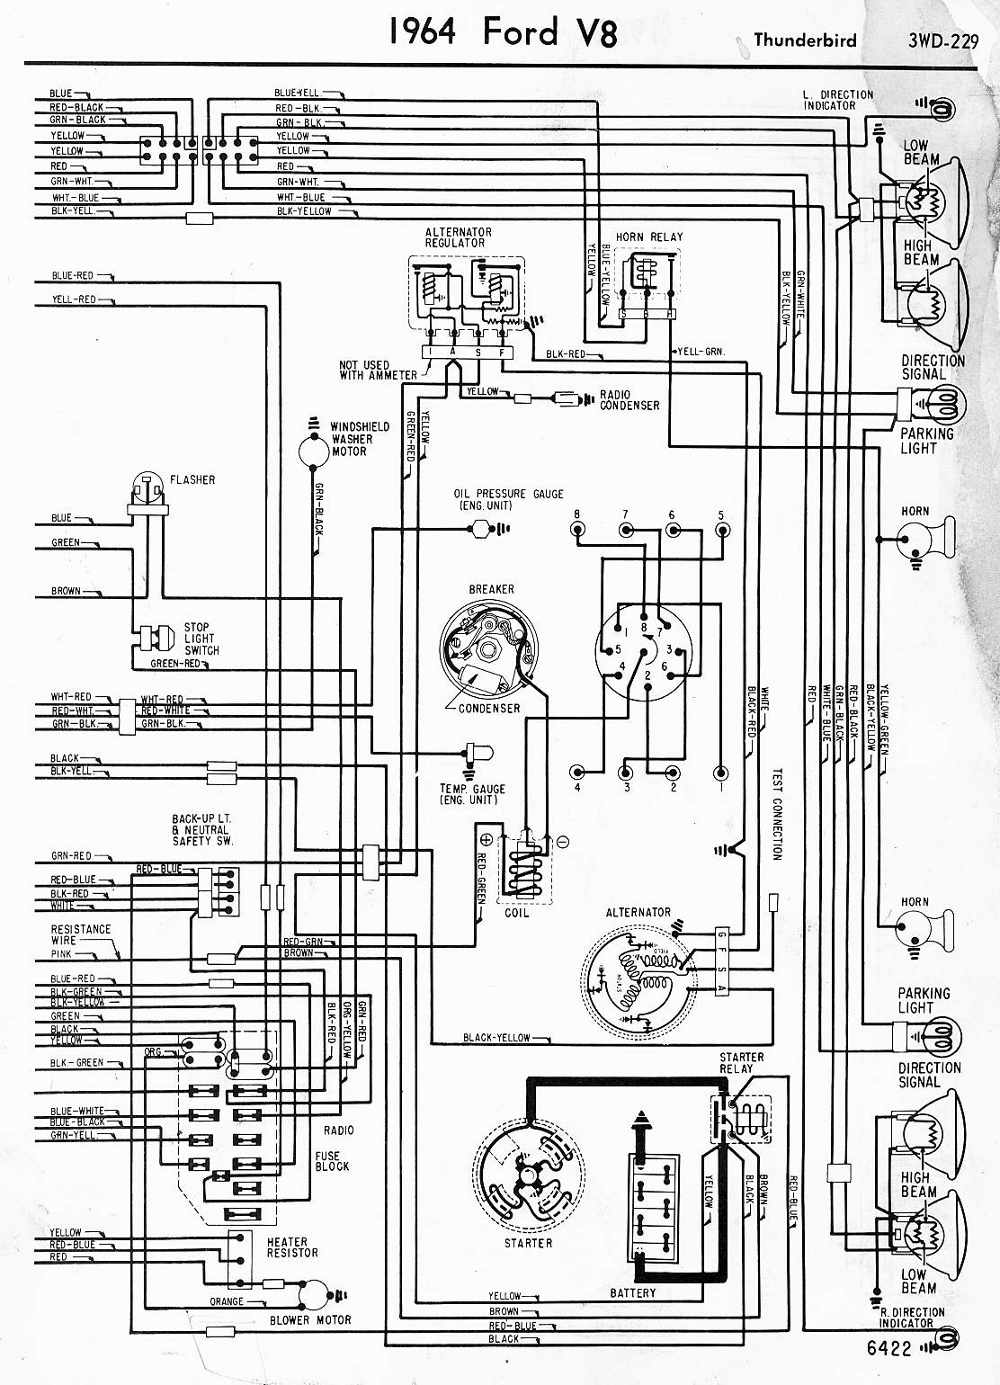 68 Corvette Dash Wiring Diagram Free Download Library 1960 1000x1385 Diagrams Schematic Software Car Electrical Schematics